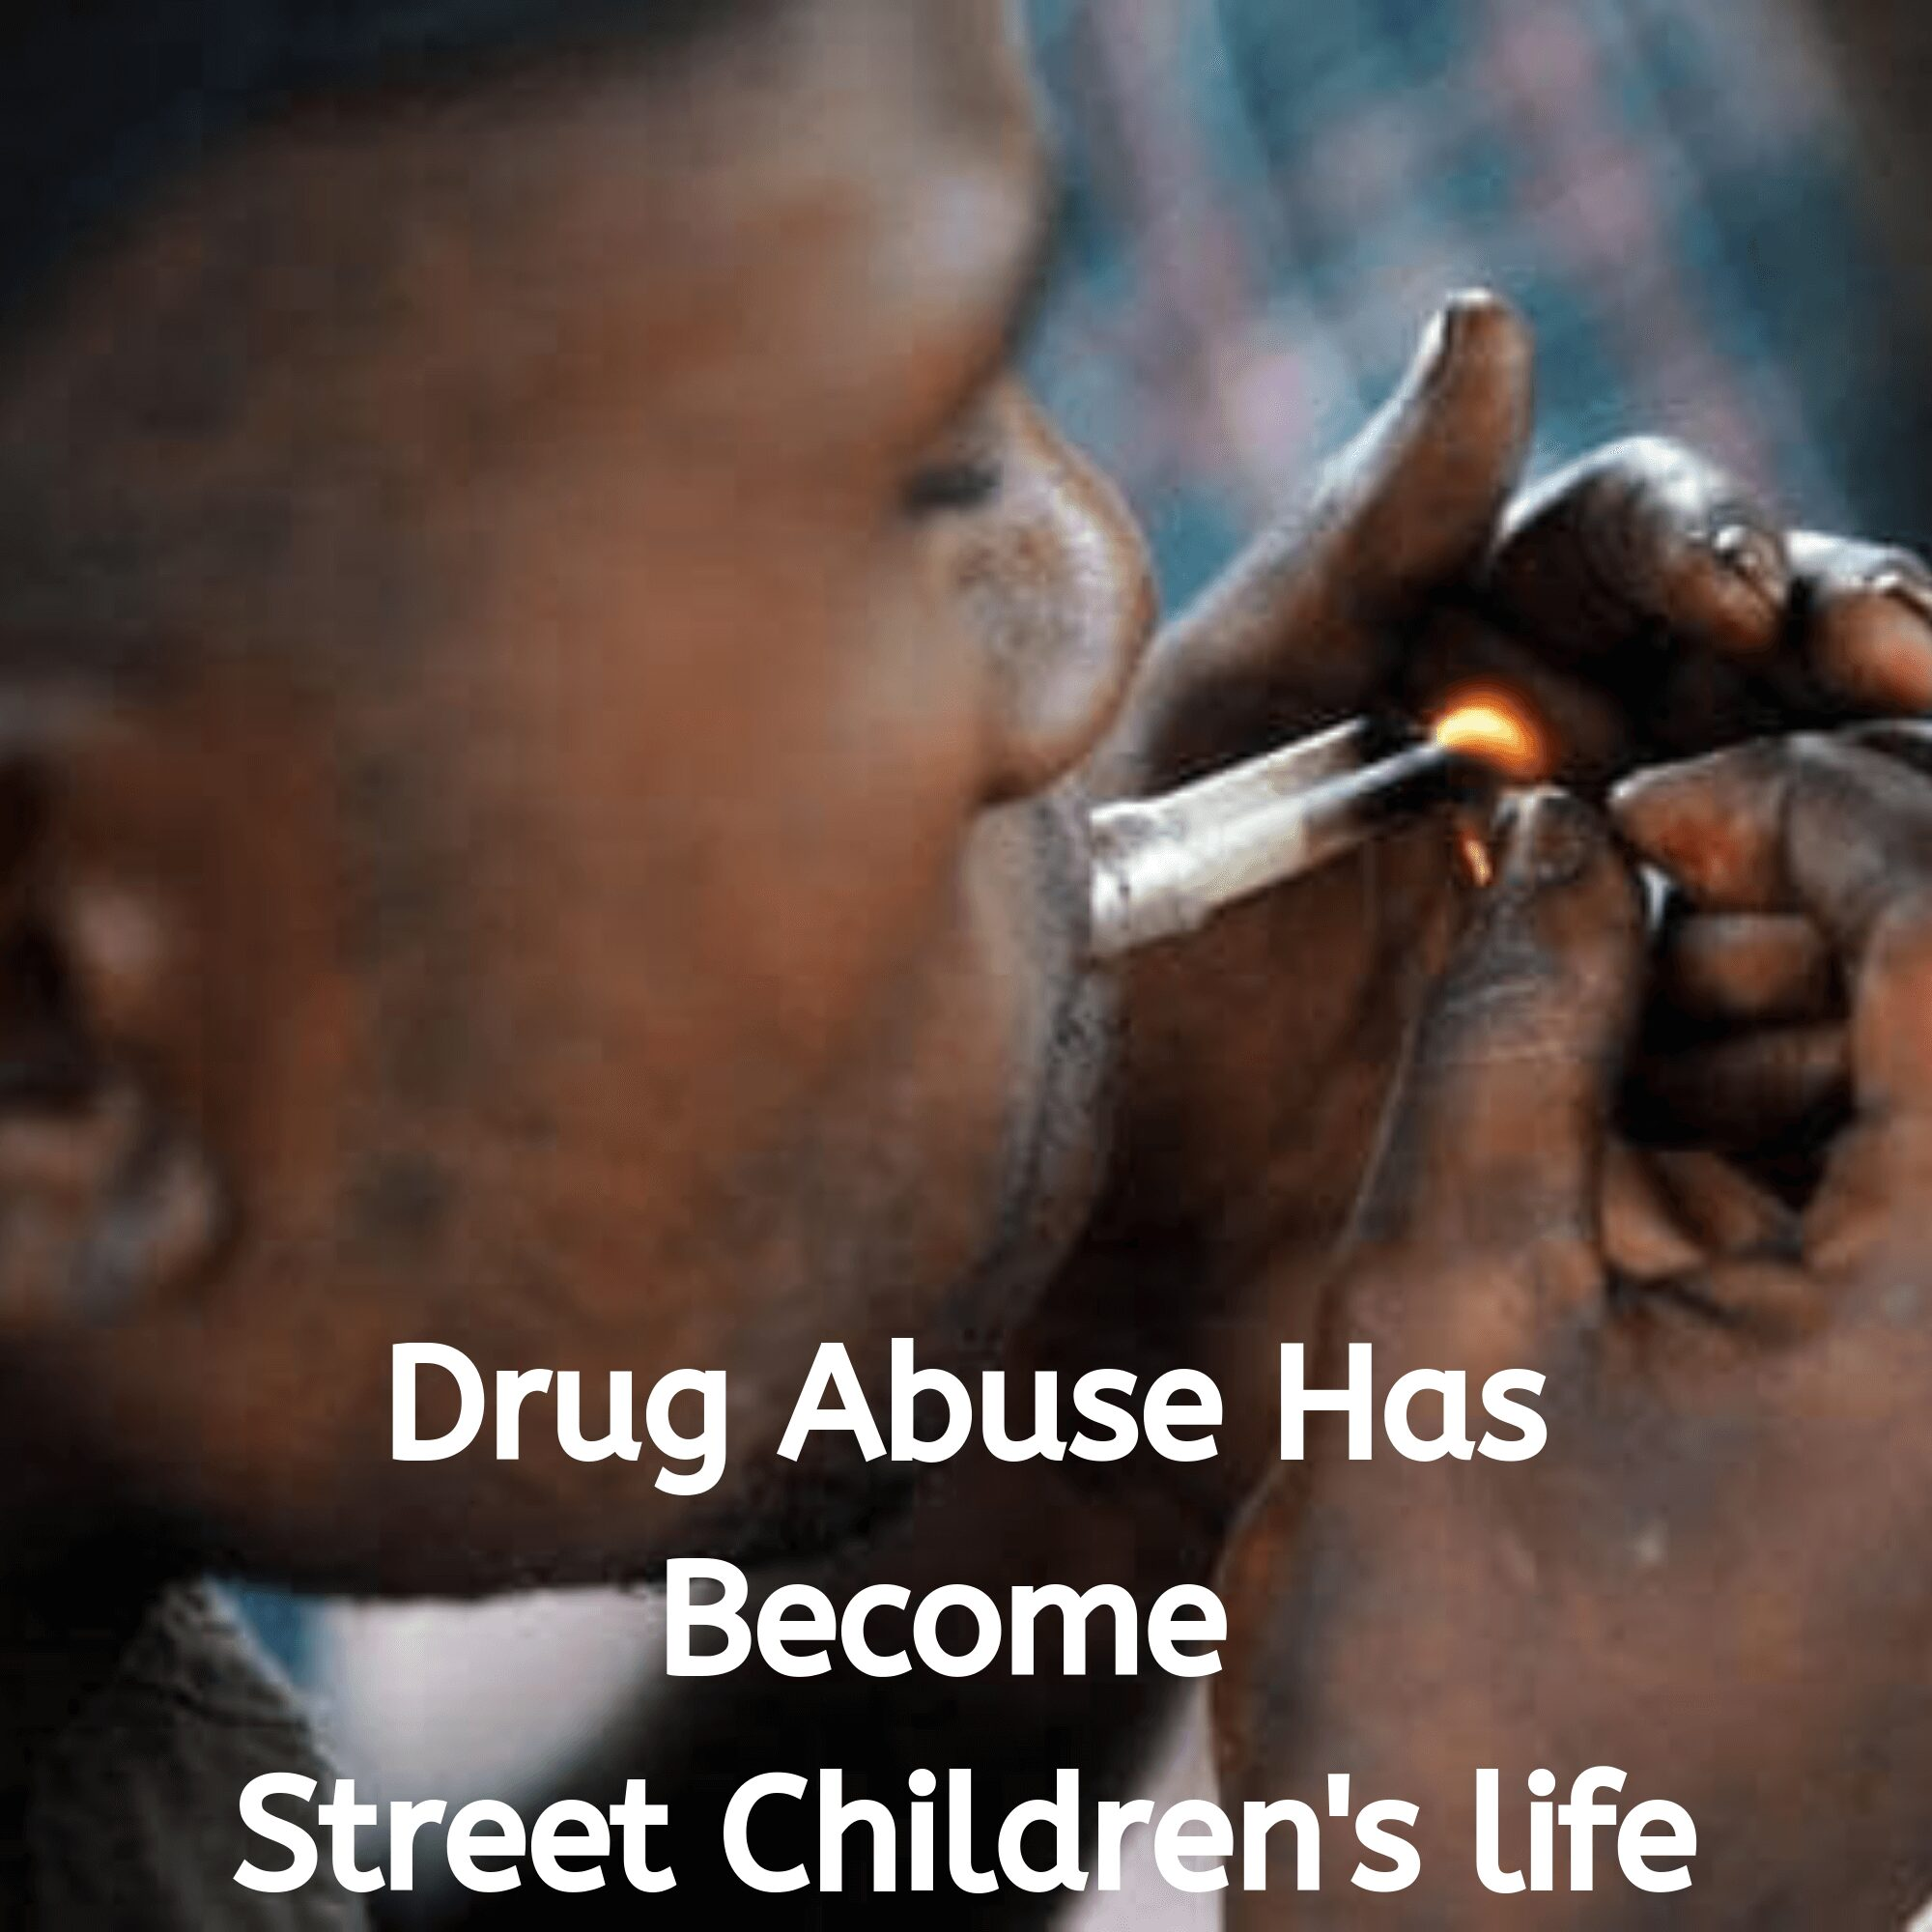 a street child abusing drugs